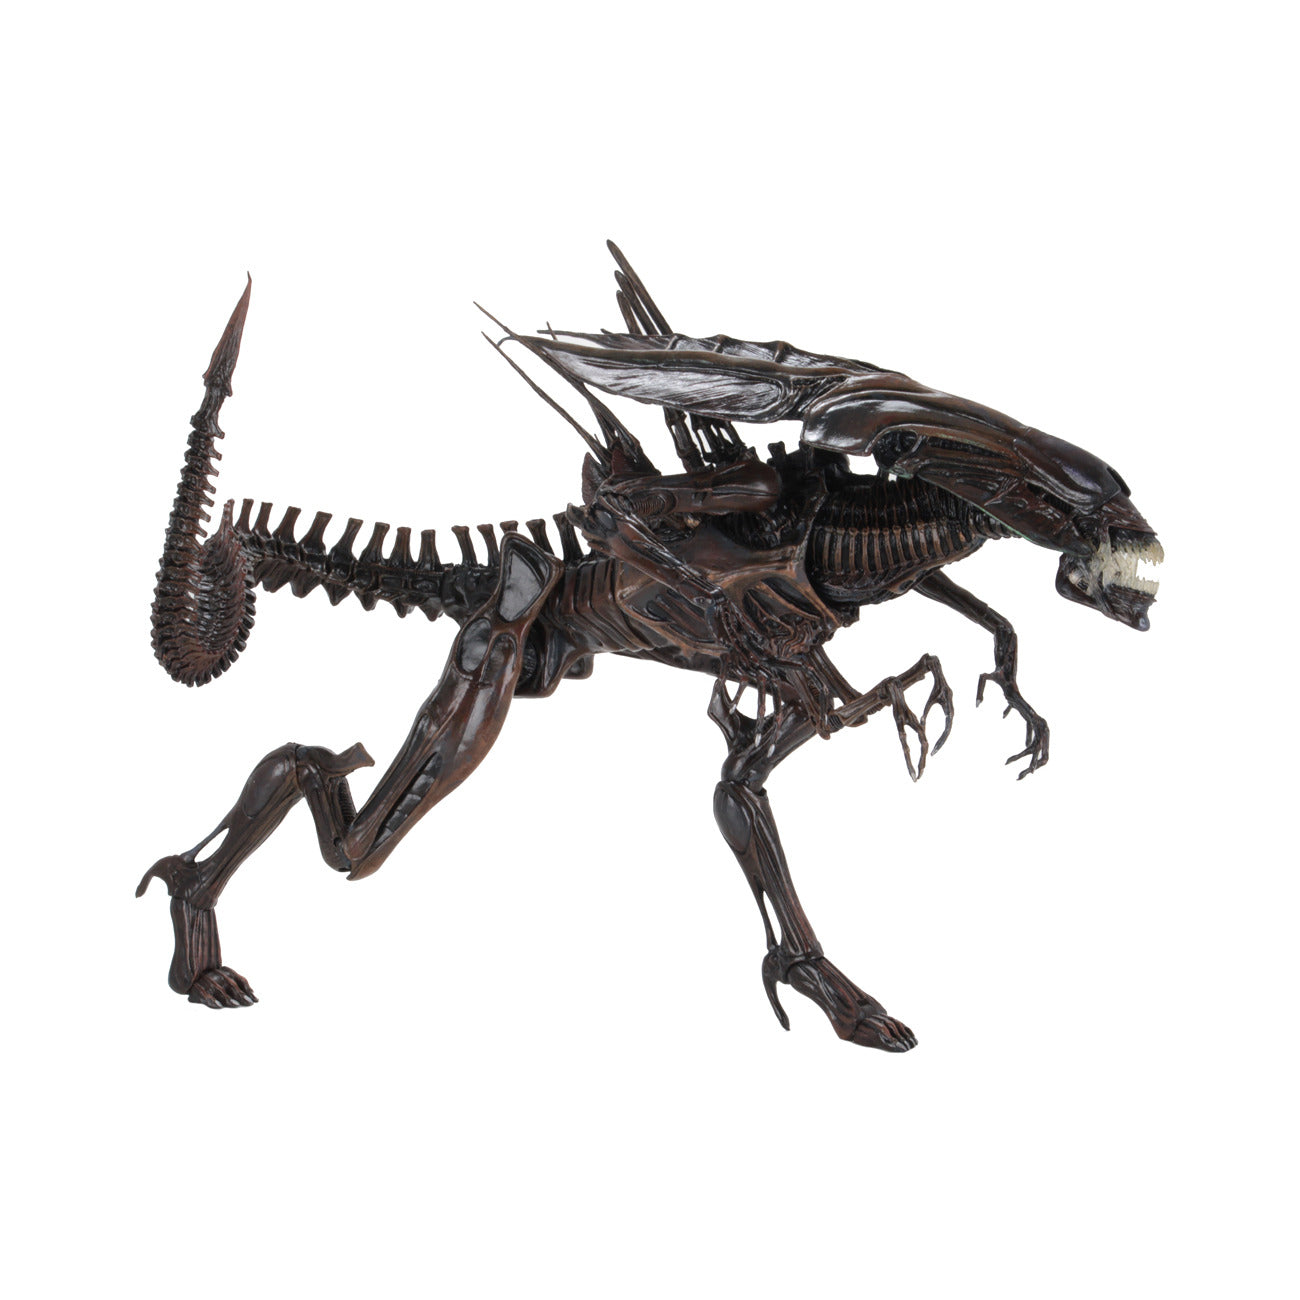 Alien Resurrection Alien Queen 15 inch Action Figure